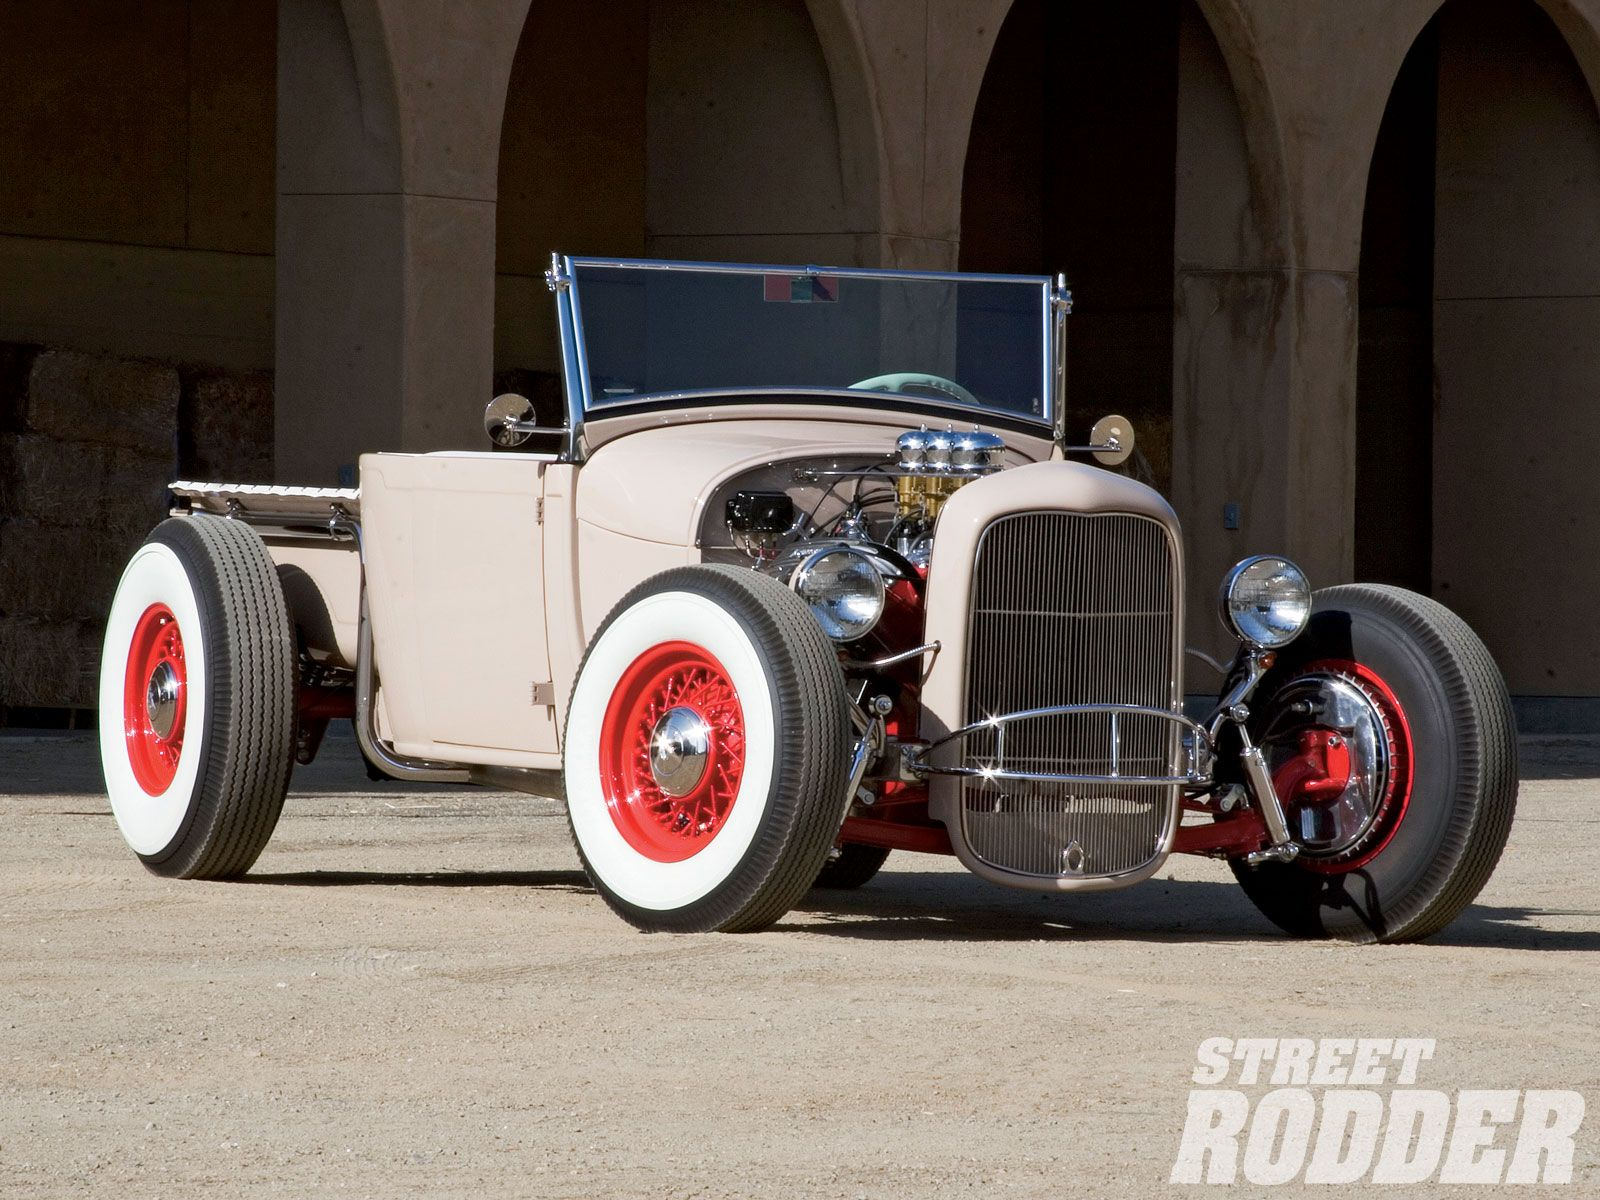 Pin By Vitali Gerhardt On My Dream Hot Rods Rat Rods Truck Hot Rods Cars Ford Roadster